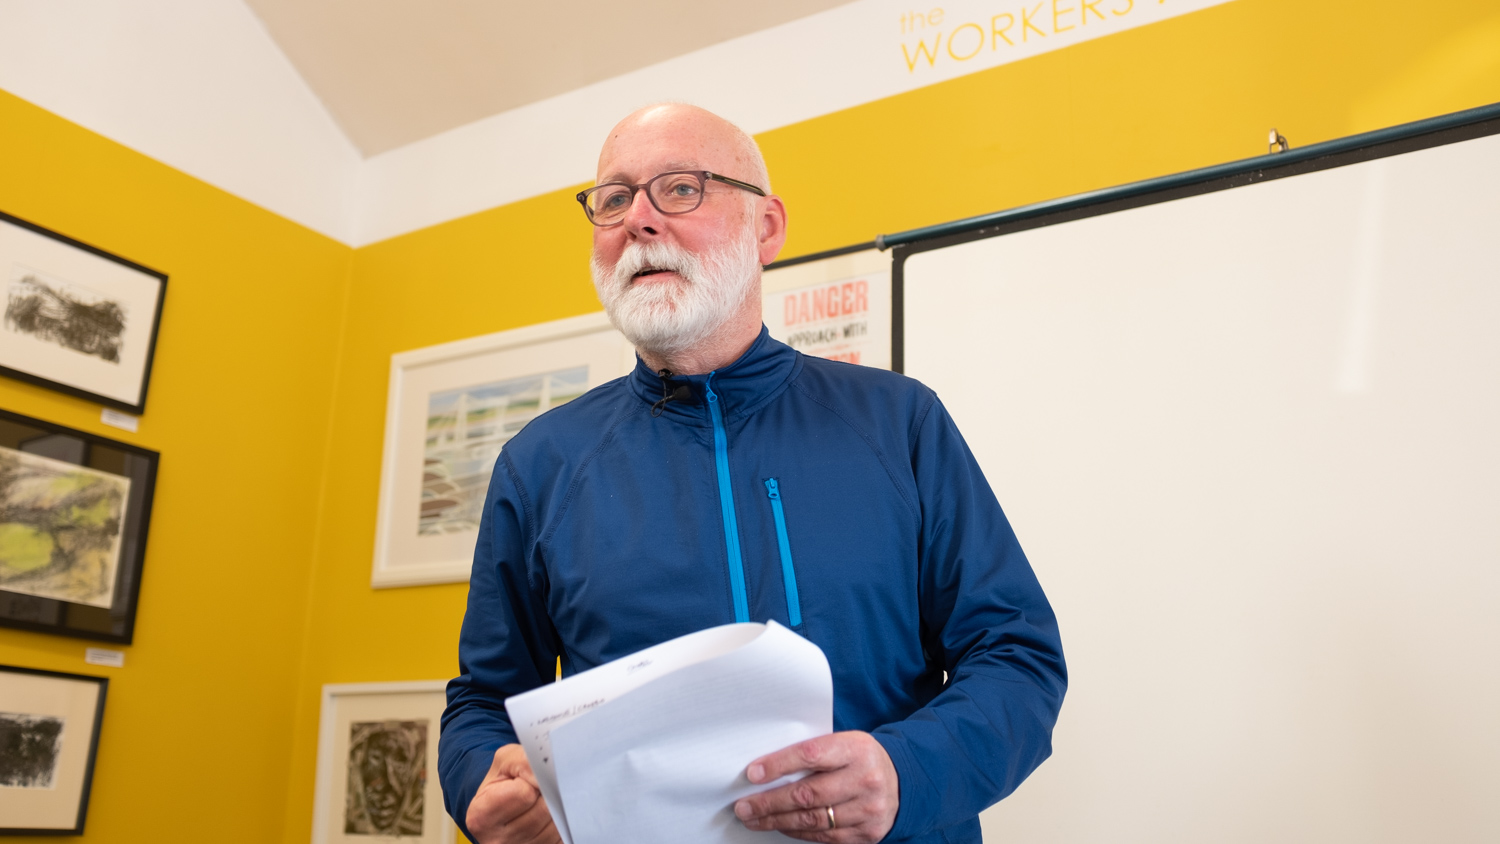 Photographer Paul Cabuts presenting his CHAPEL talk in The Workers Gallery, Ynyshir